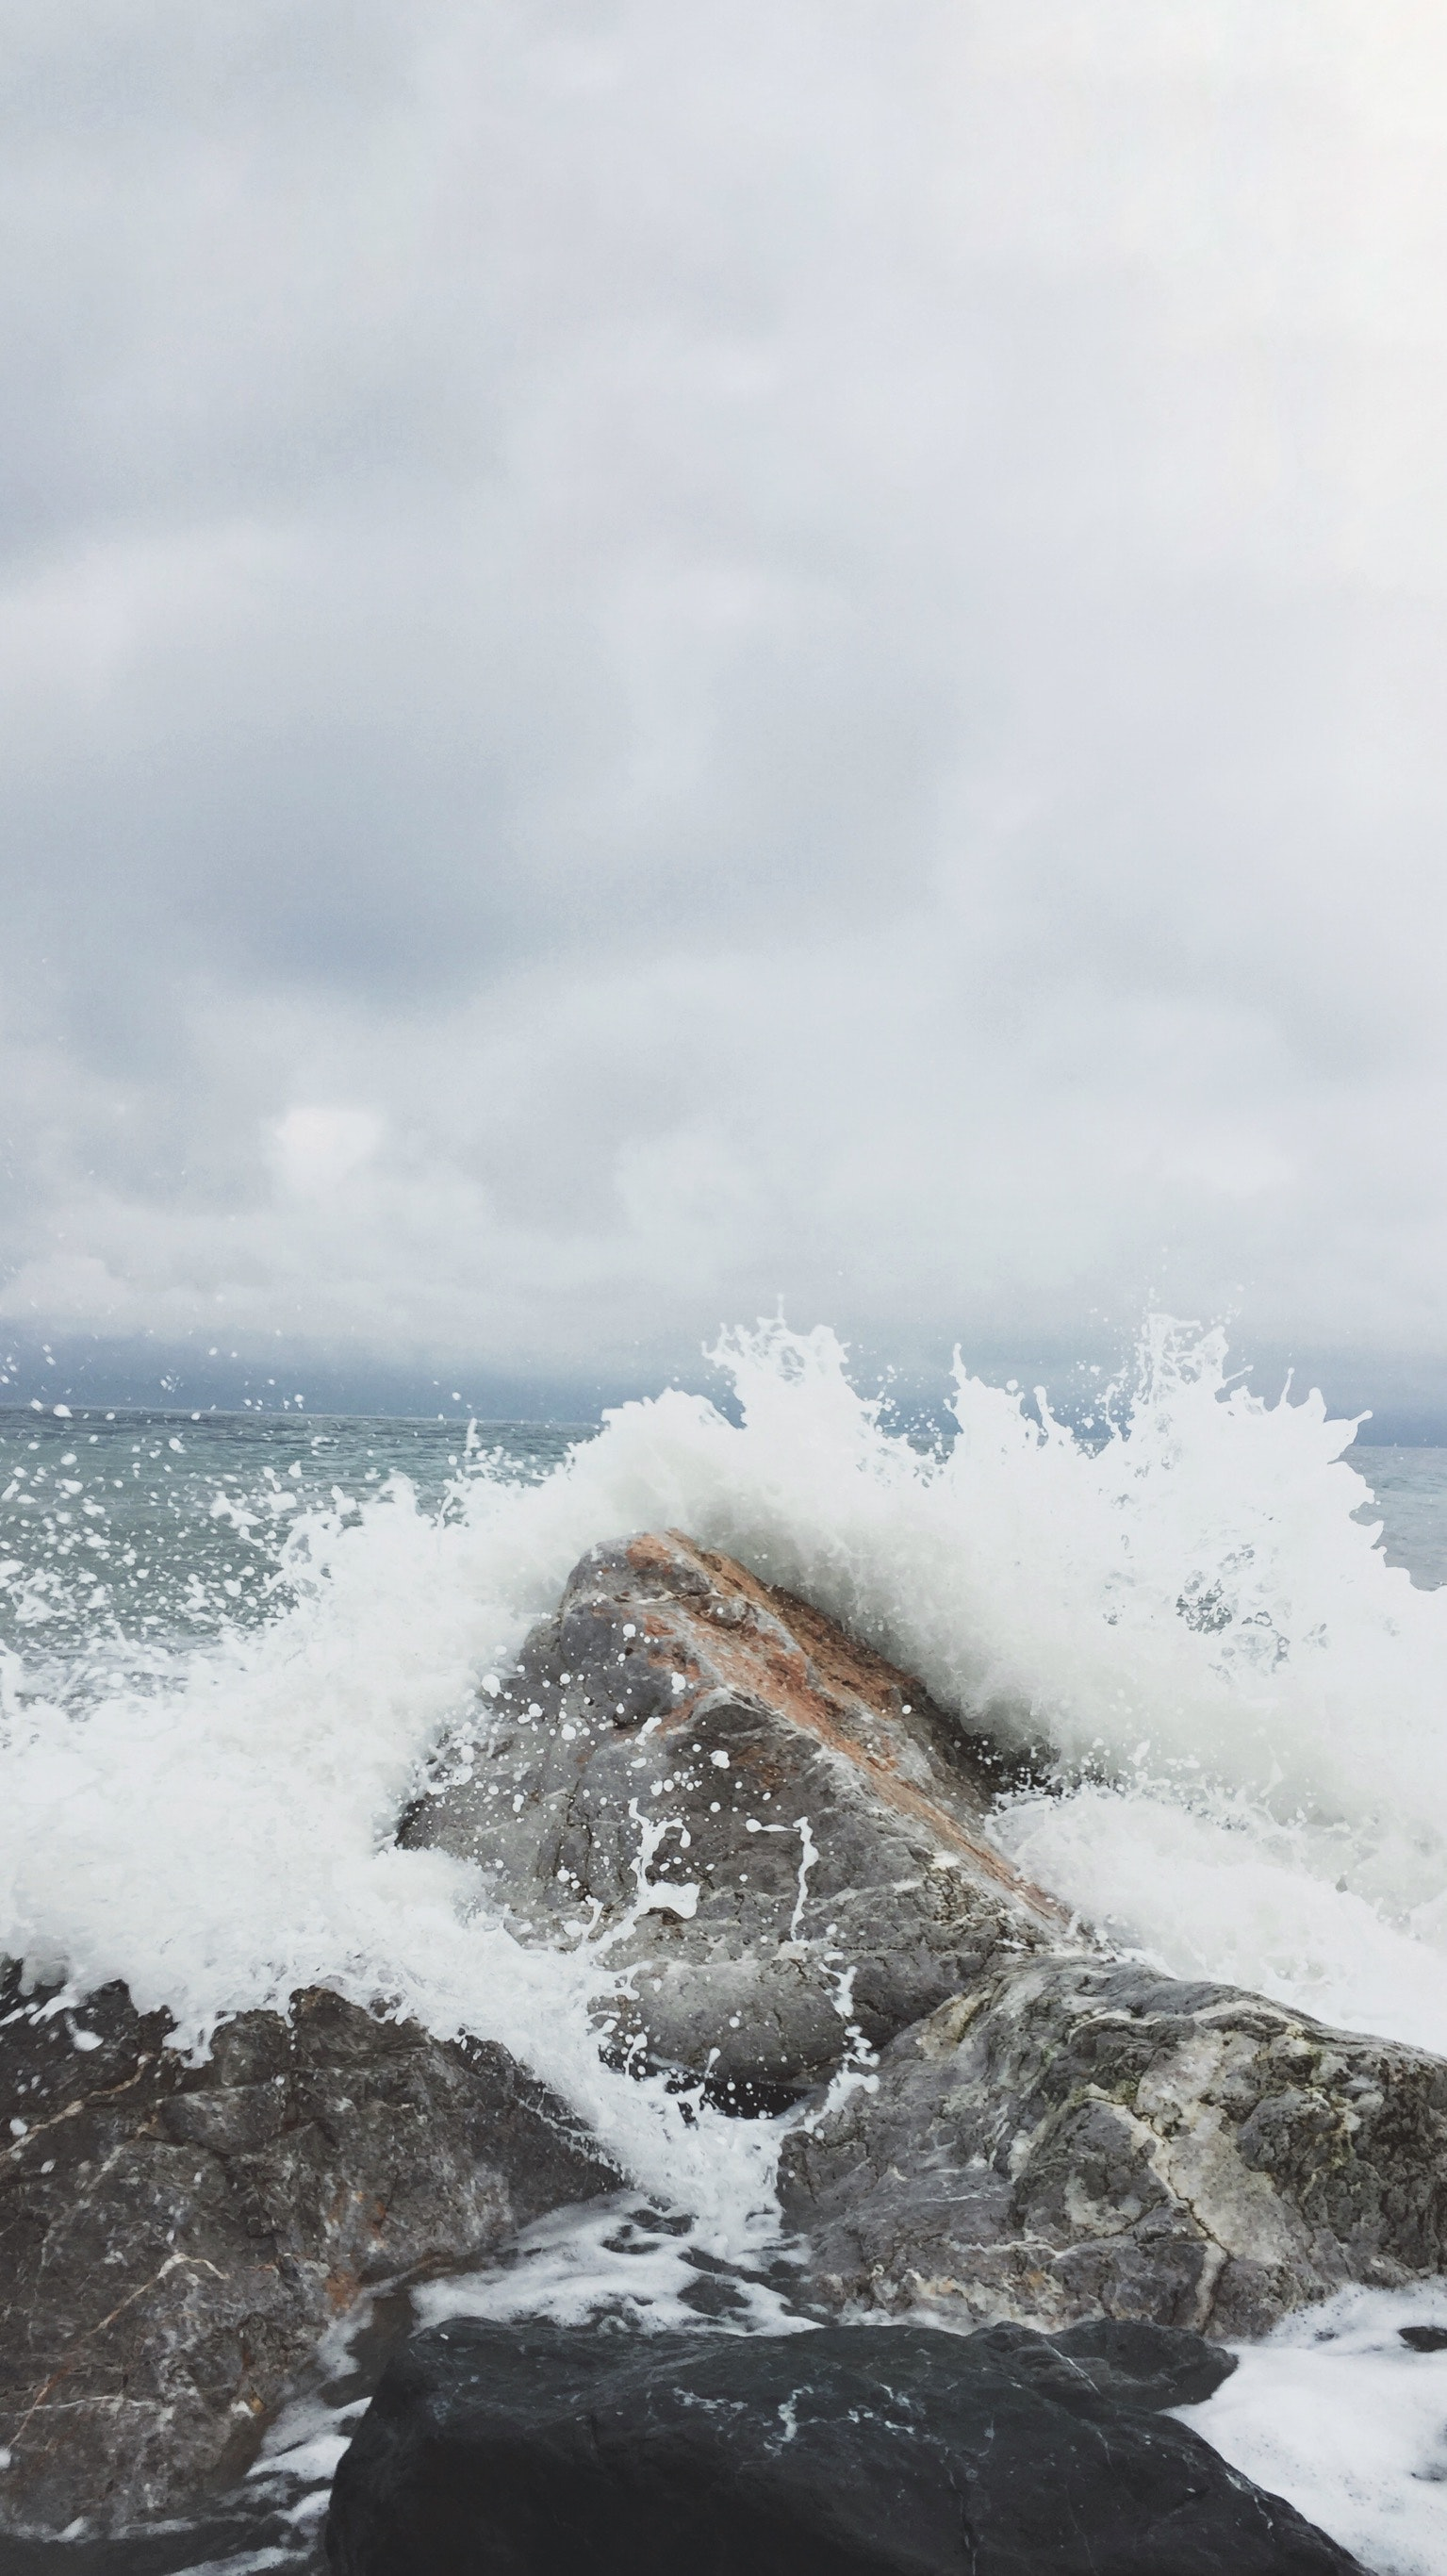 Person Taking Photo of Sea Waves and Gray Concrete Rock, Beach, Sky, Waves, Water, HQ Photo